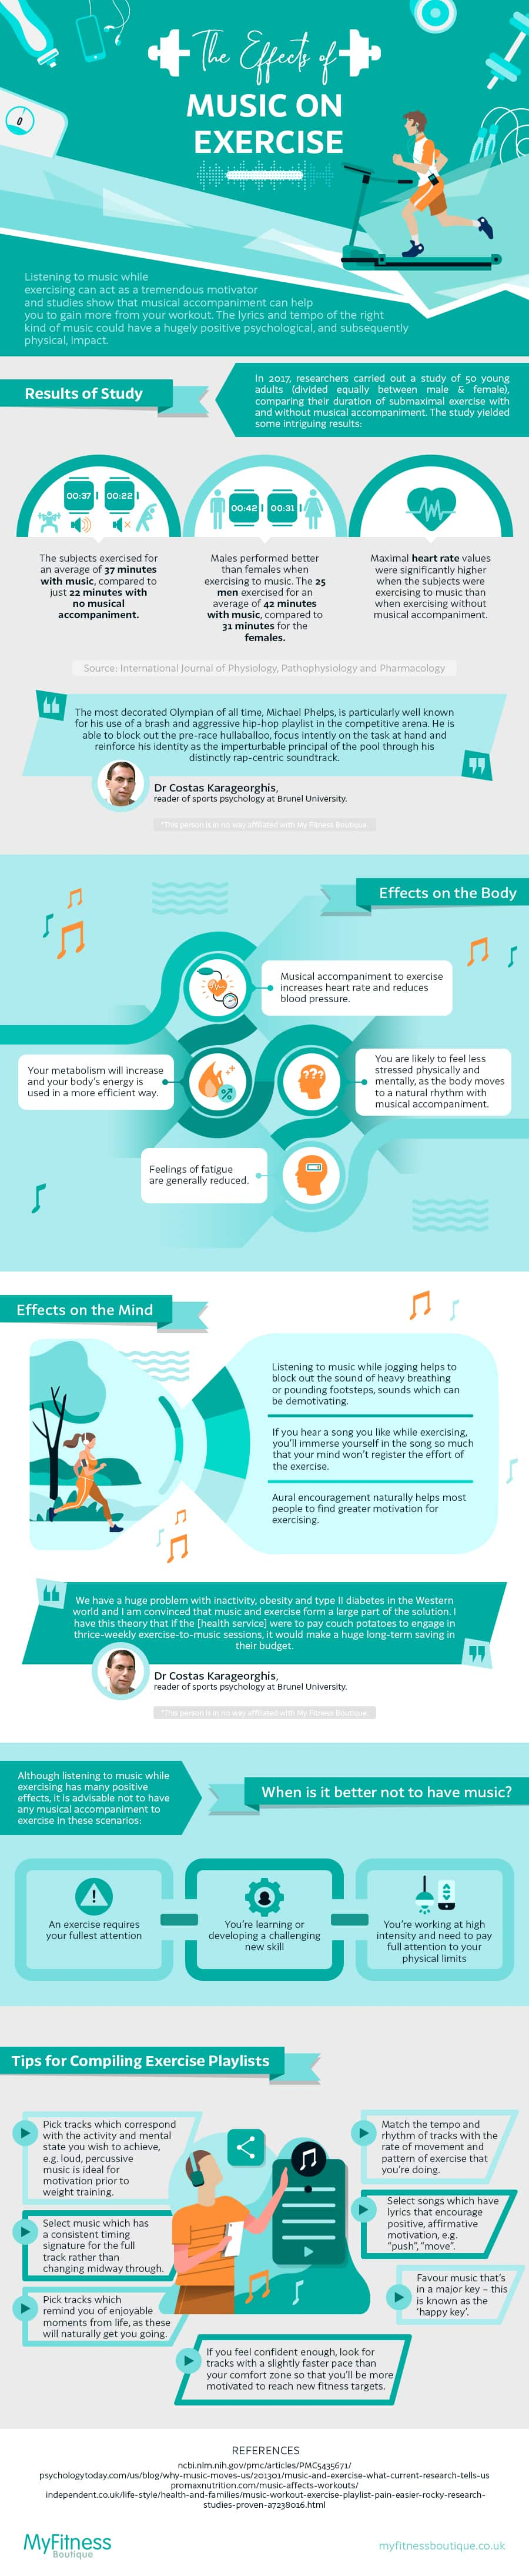 The Effects of Music on Exercise, Trend health